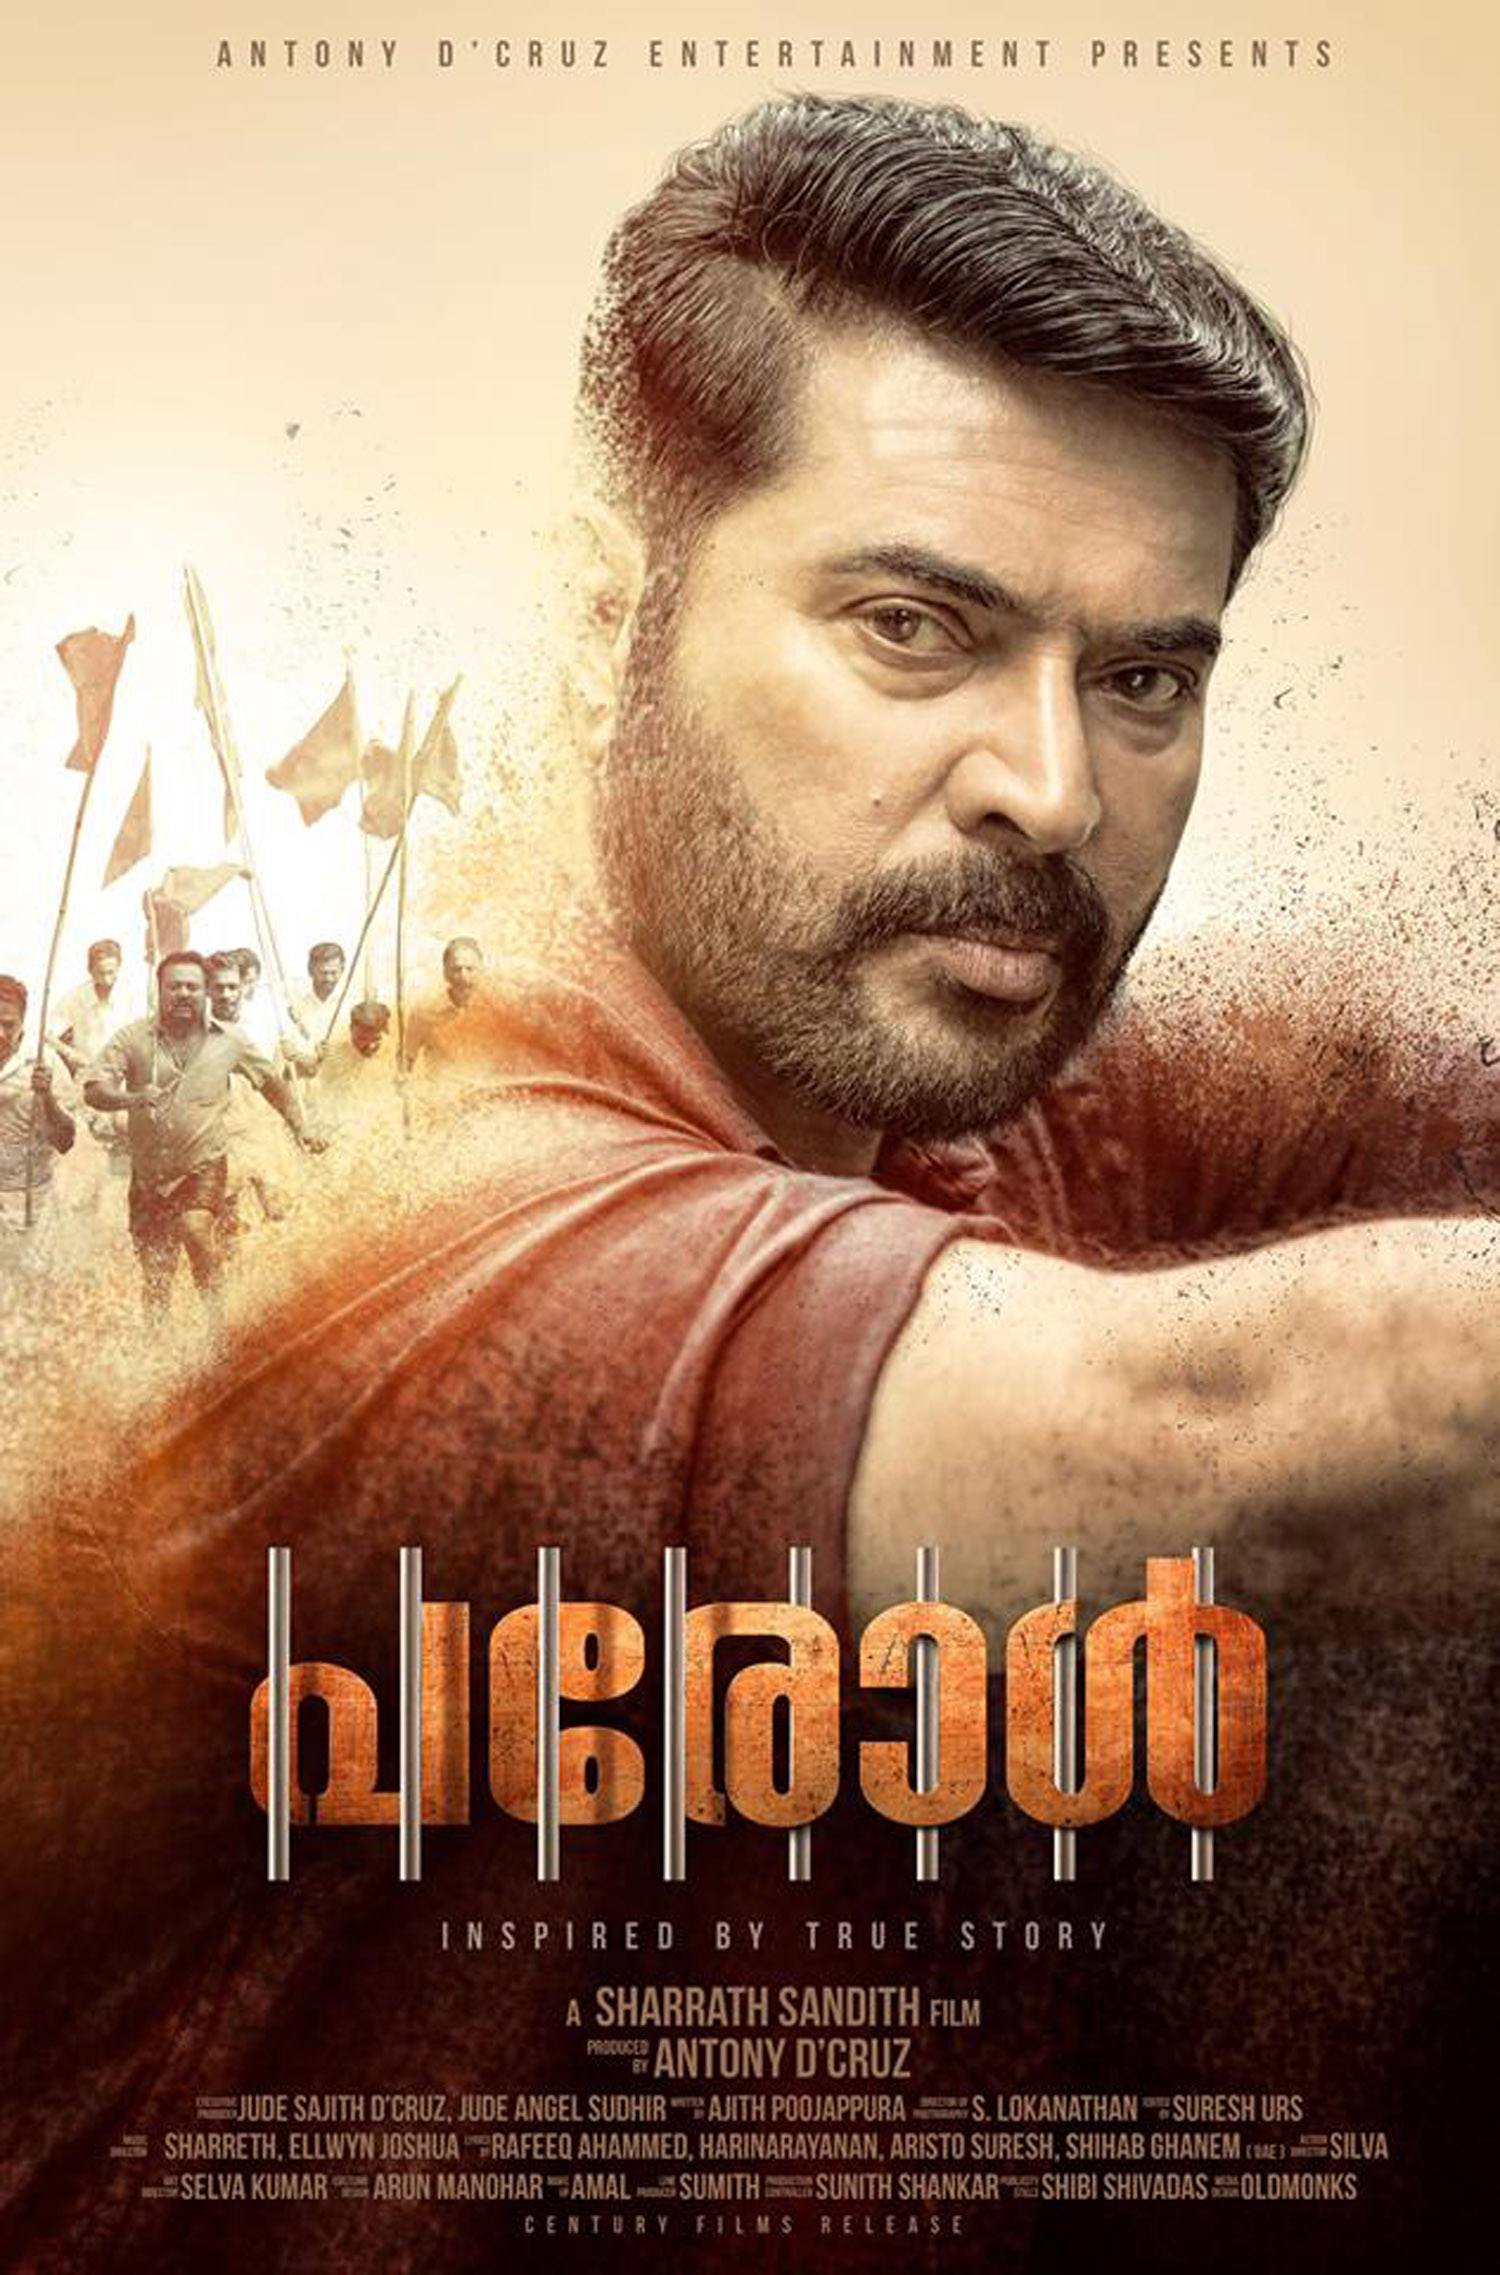 mammootty latest news, mammootty upcoming movie, parole malayalam movie, parole movie poster, mammootty new movie, mammootty in parole, latest malayalam news